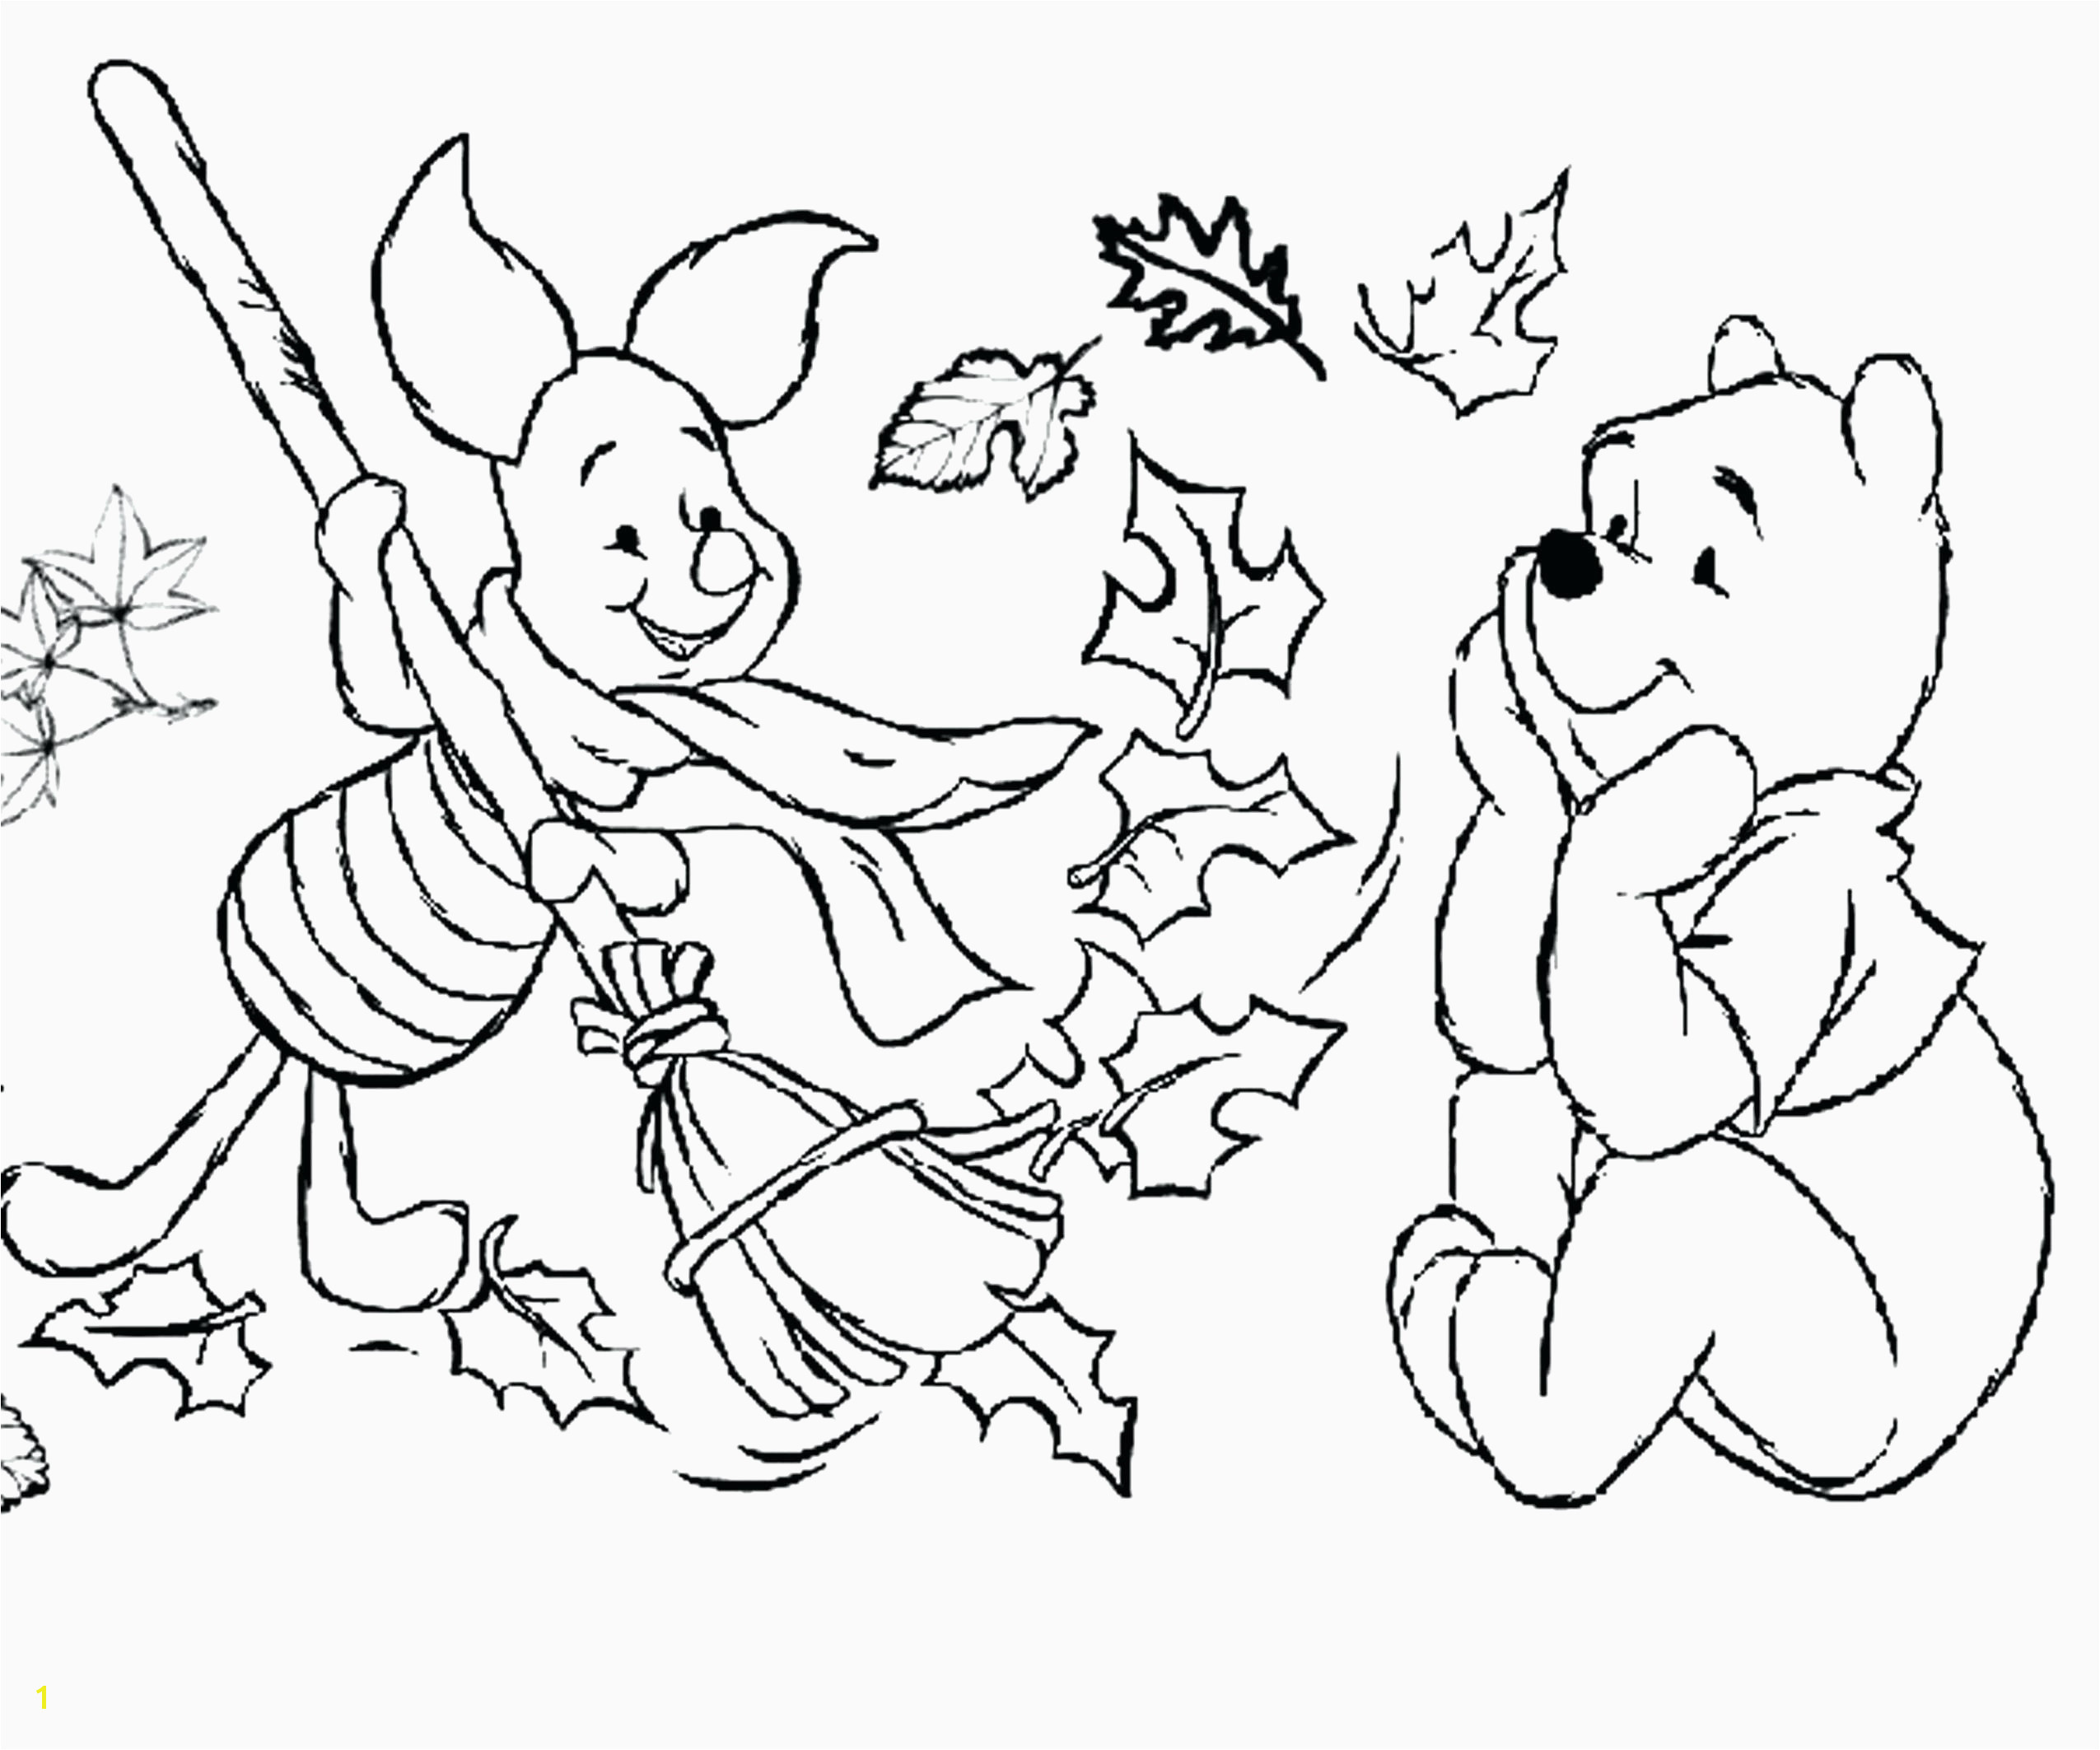 Coloring Adult Inspirational s Adult Coloring Page Fall Coloring Pages 0d Page for Kids